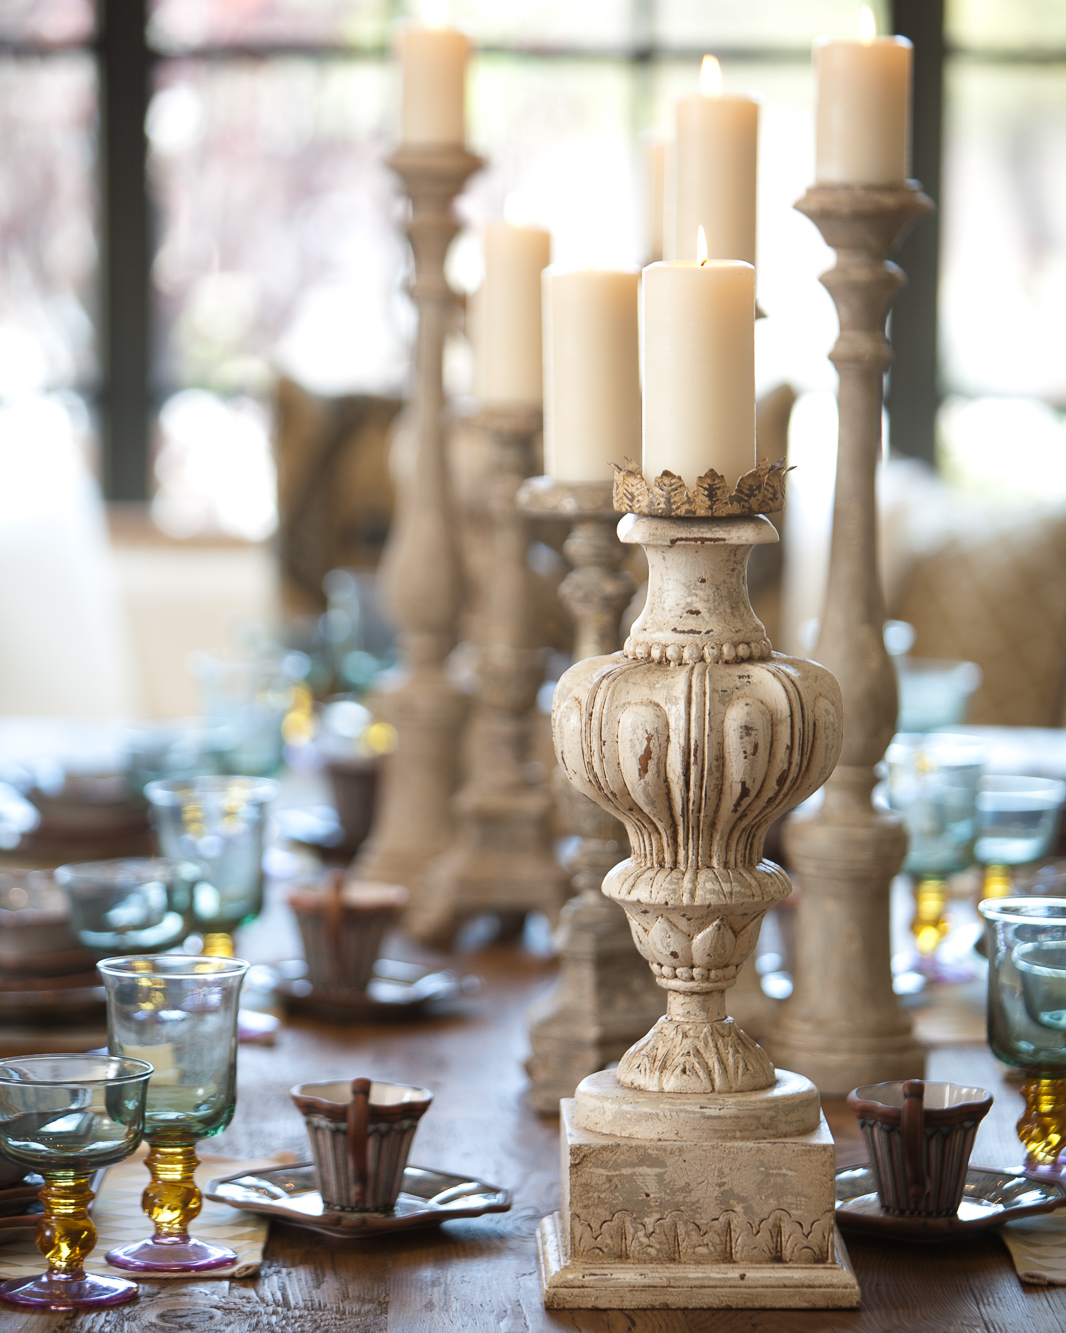 Tall candlesticks and lit candles in the center of an elegantly set table.